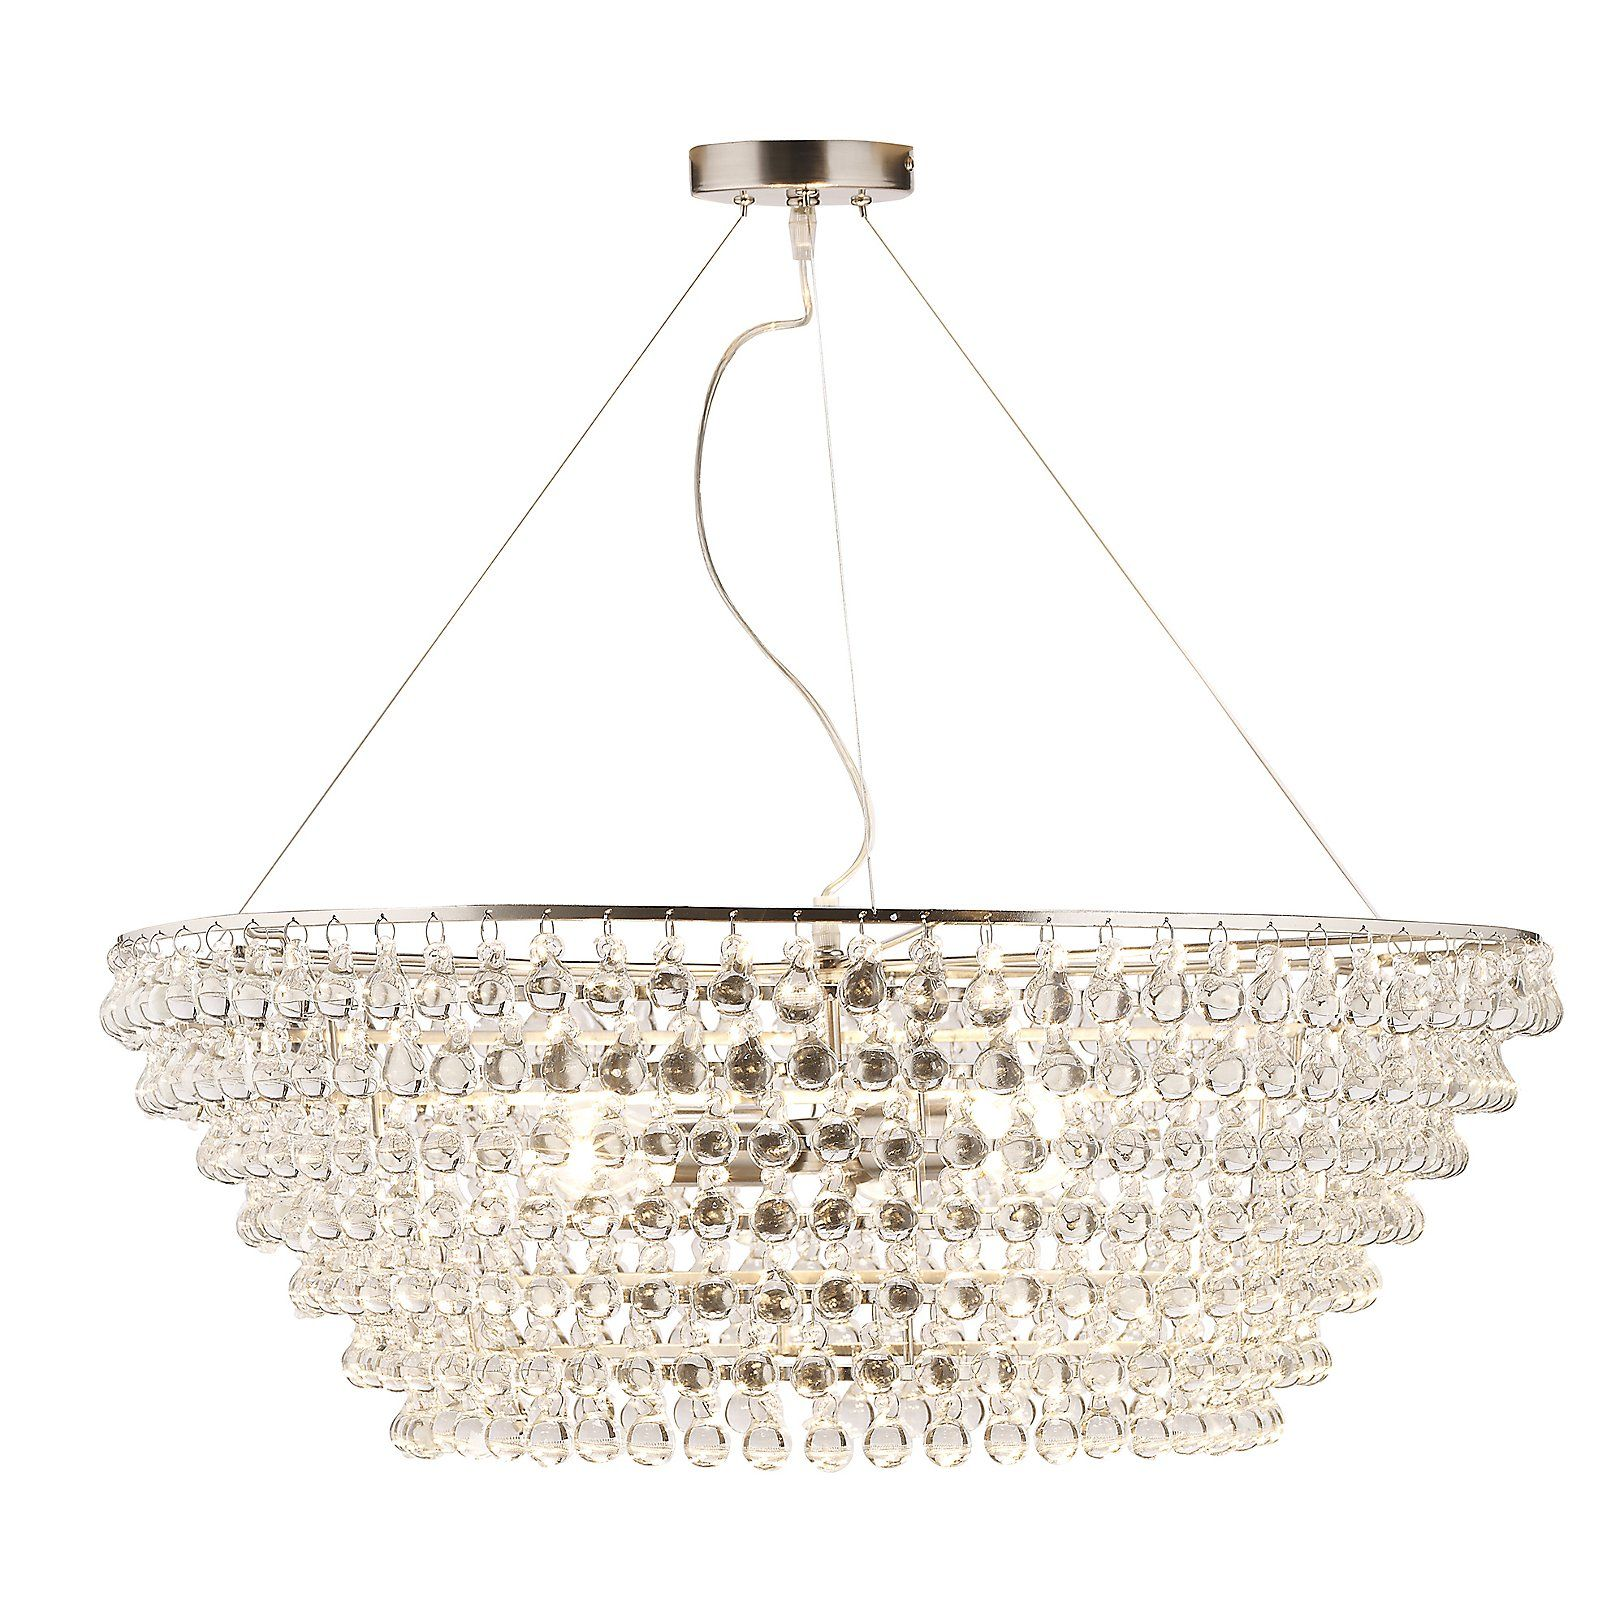 Glass Orb Chandelier Extra The White pany UK